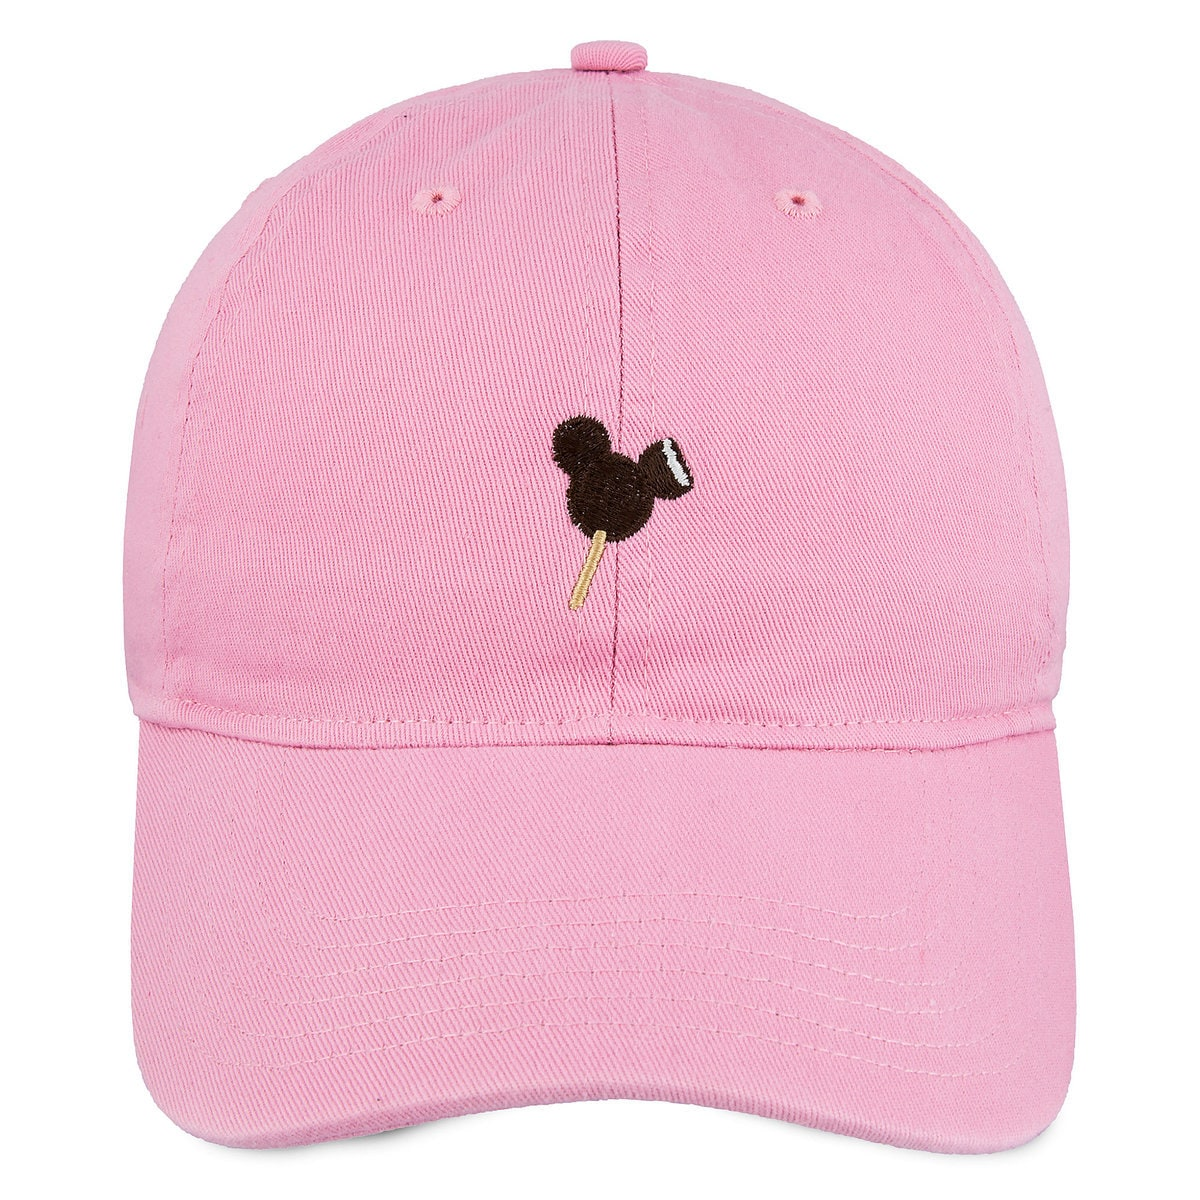 7a050be7abb1c Product Image of Mickey Mouse Ice Cream Baseball Cap for Adults   1